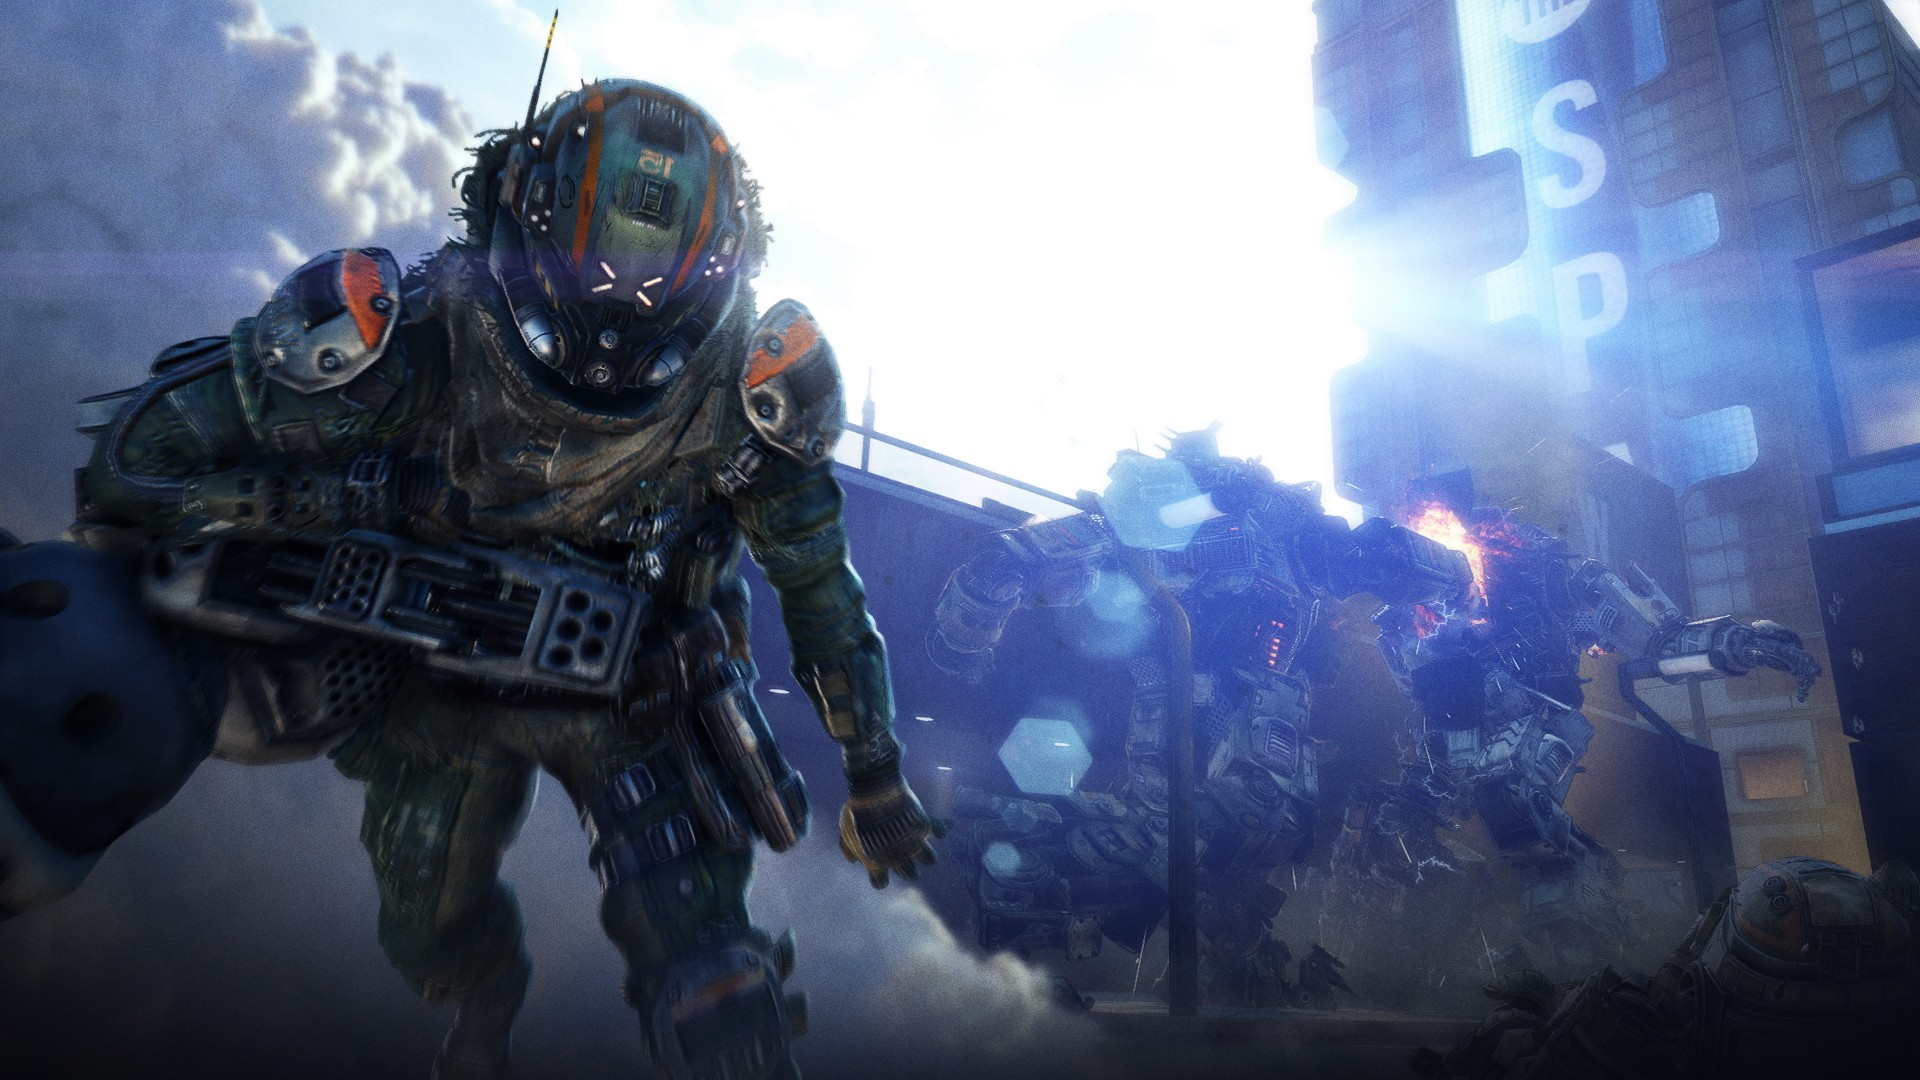 Titanfall-Update-8-Launches-Today-Includes-New-Frontier-Defense-Coop-Mode-462872-2-1414179571035